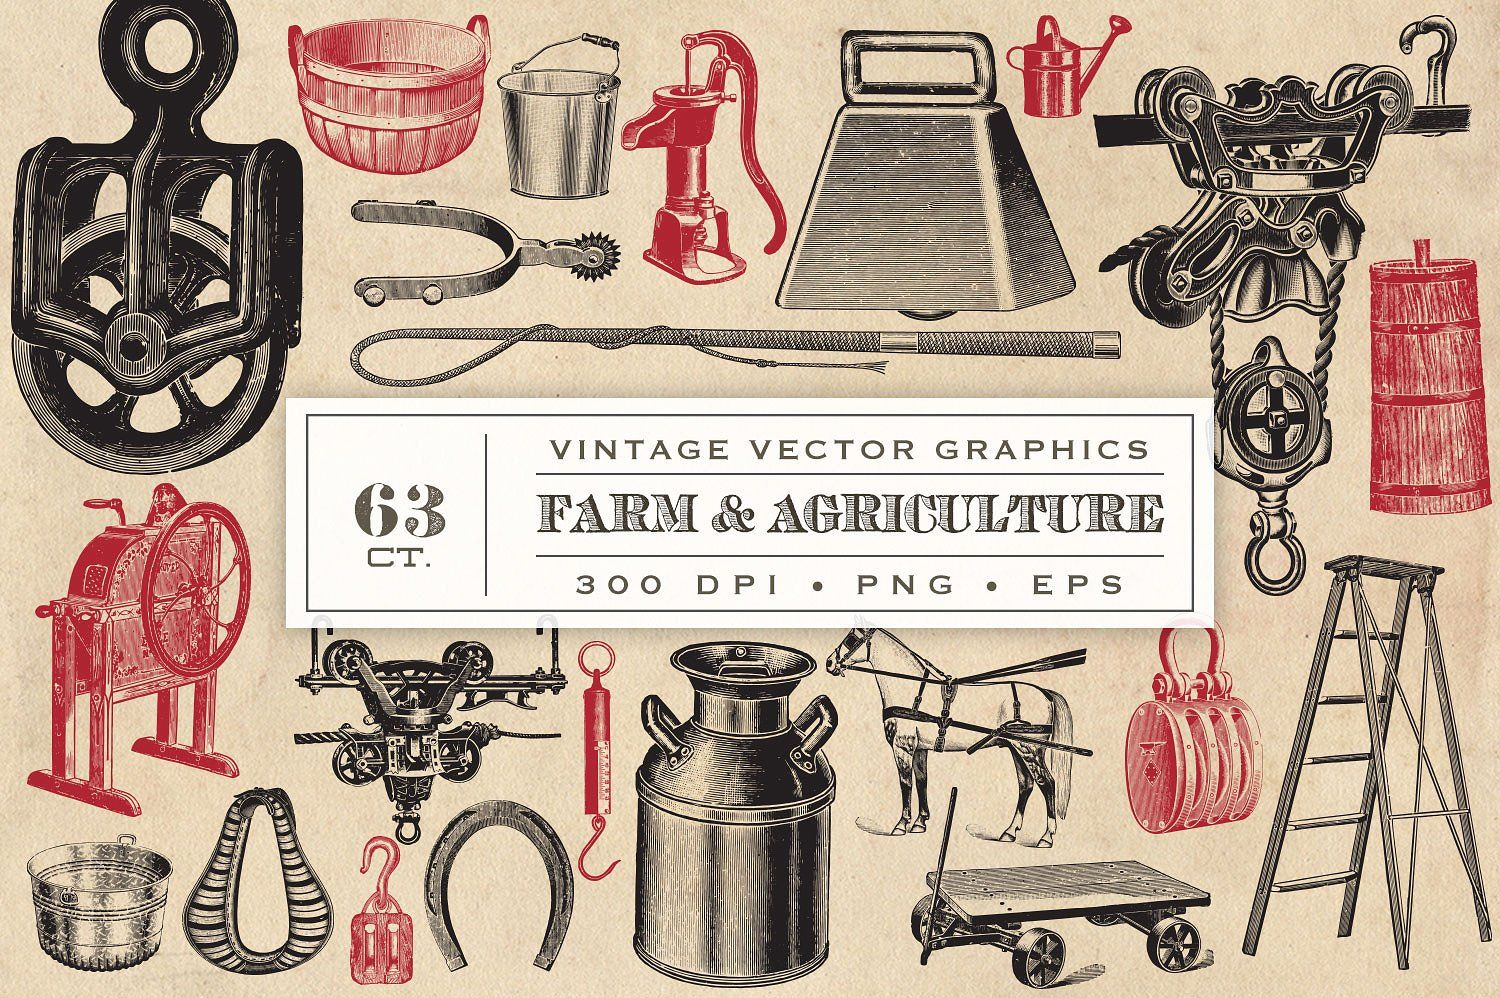 Farm & Agriculture Vector Graphics by Eclectic Anthology